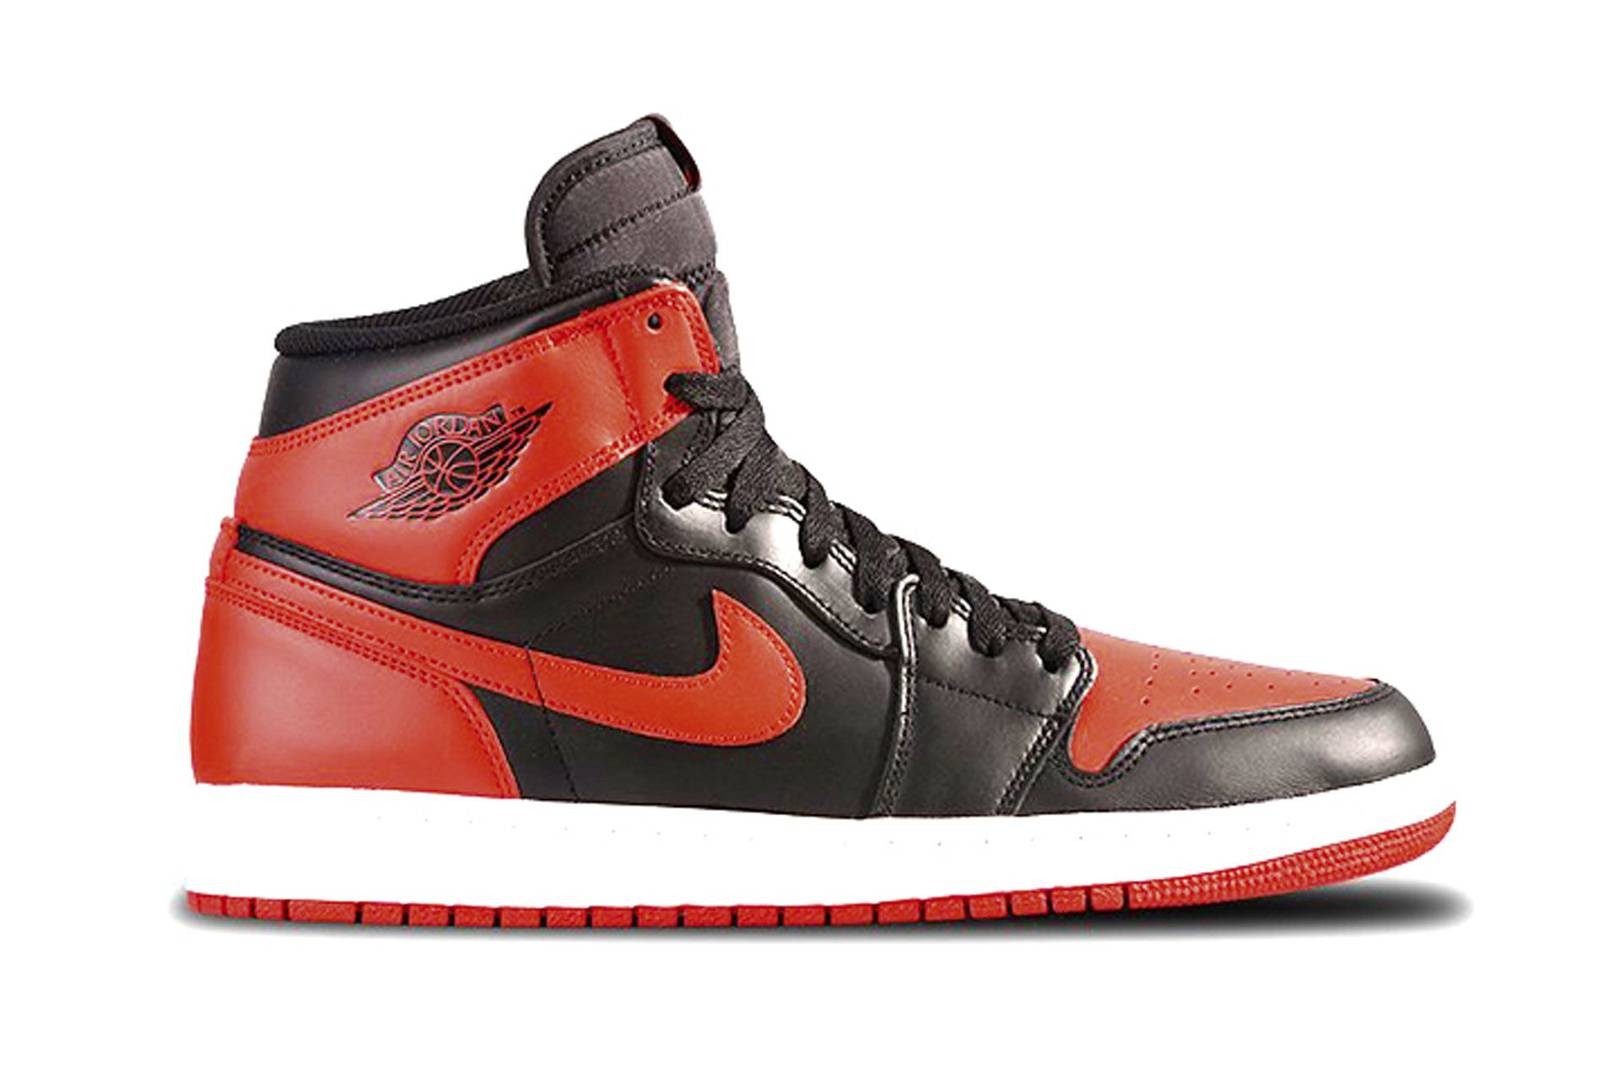 d4f1003d68f London exhibition  G.O.A.T Sneakers  lists the 25 greatest trainers of all  time